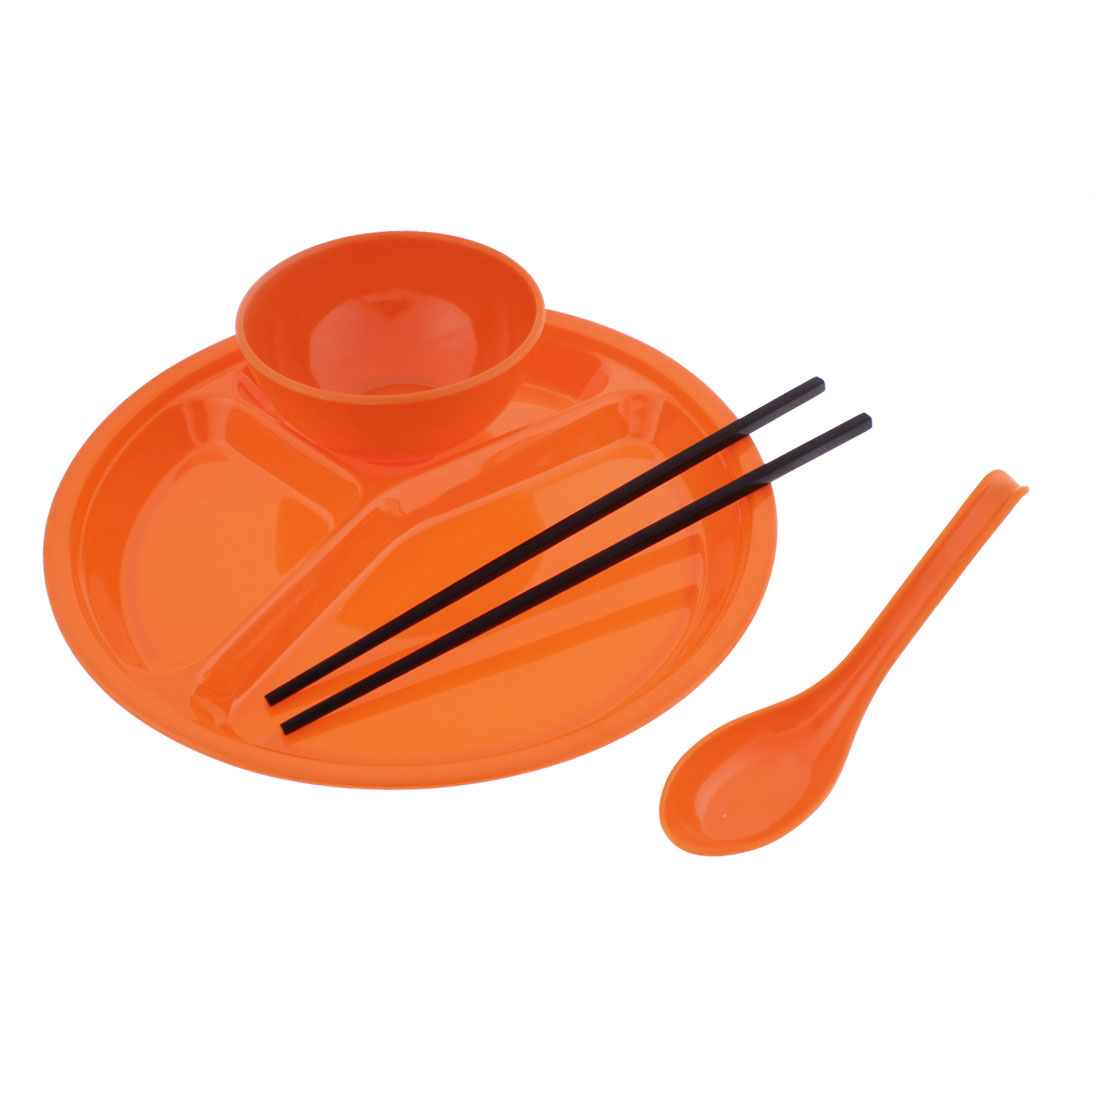 School Canteen Plastic Bowl Chopsticks Spoon 3 Sections Divided Plate Orange 4 in 1